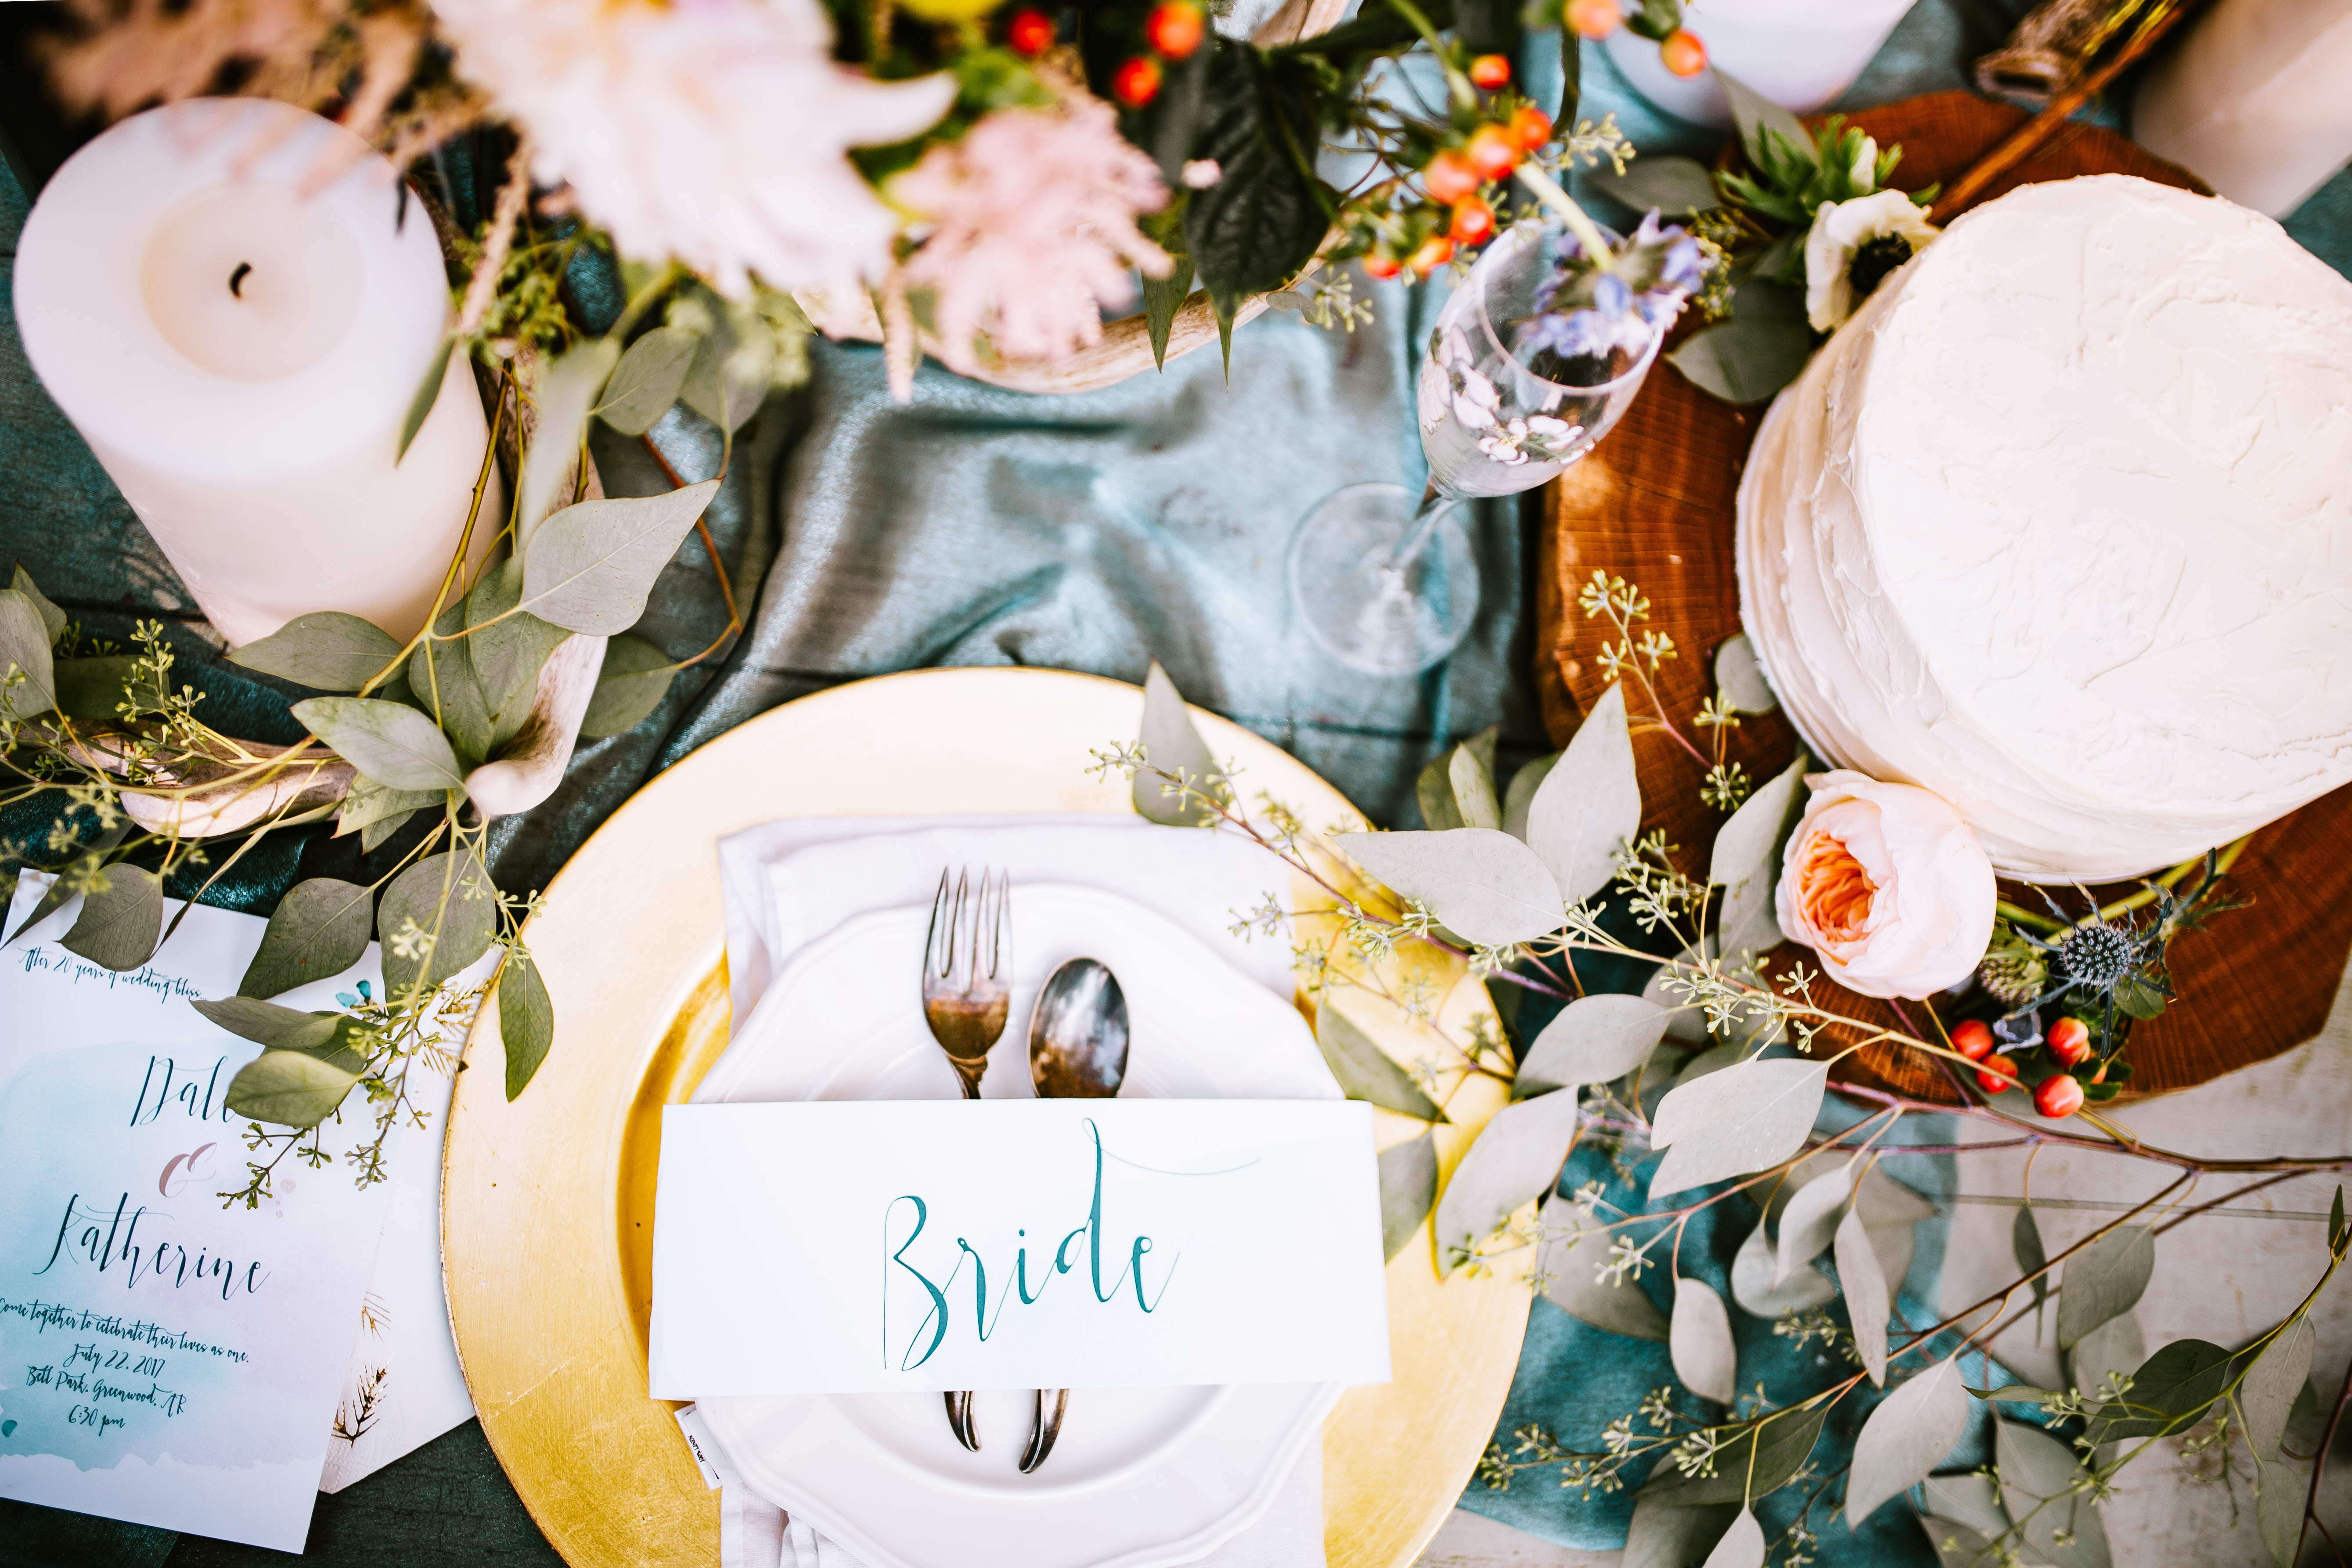 bride dinnerware set on table